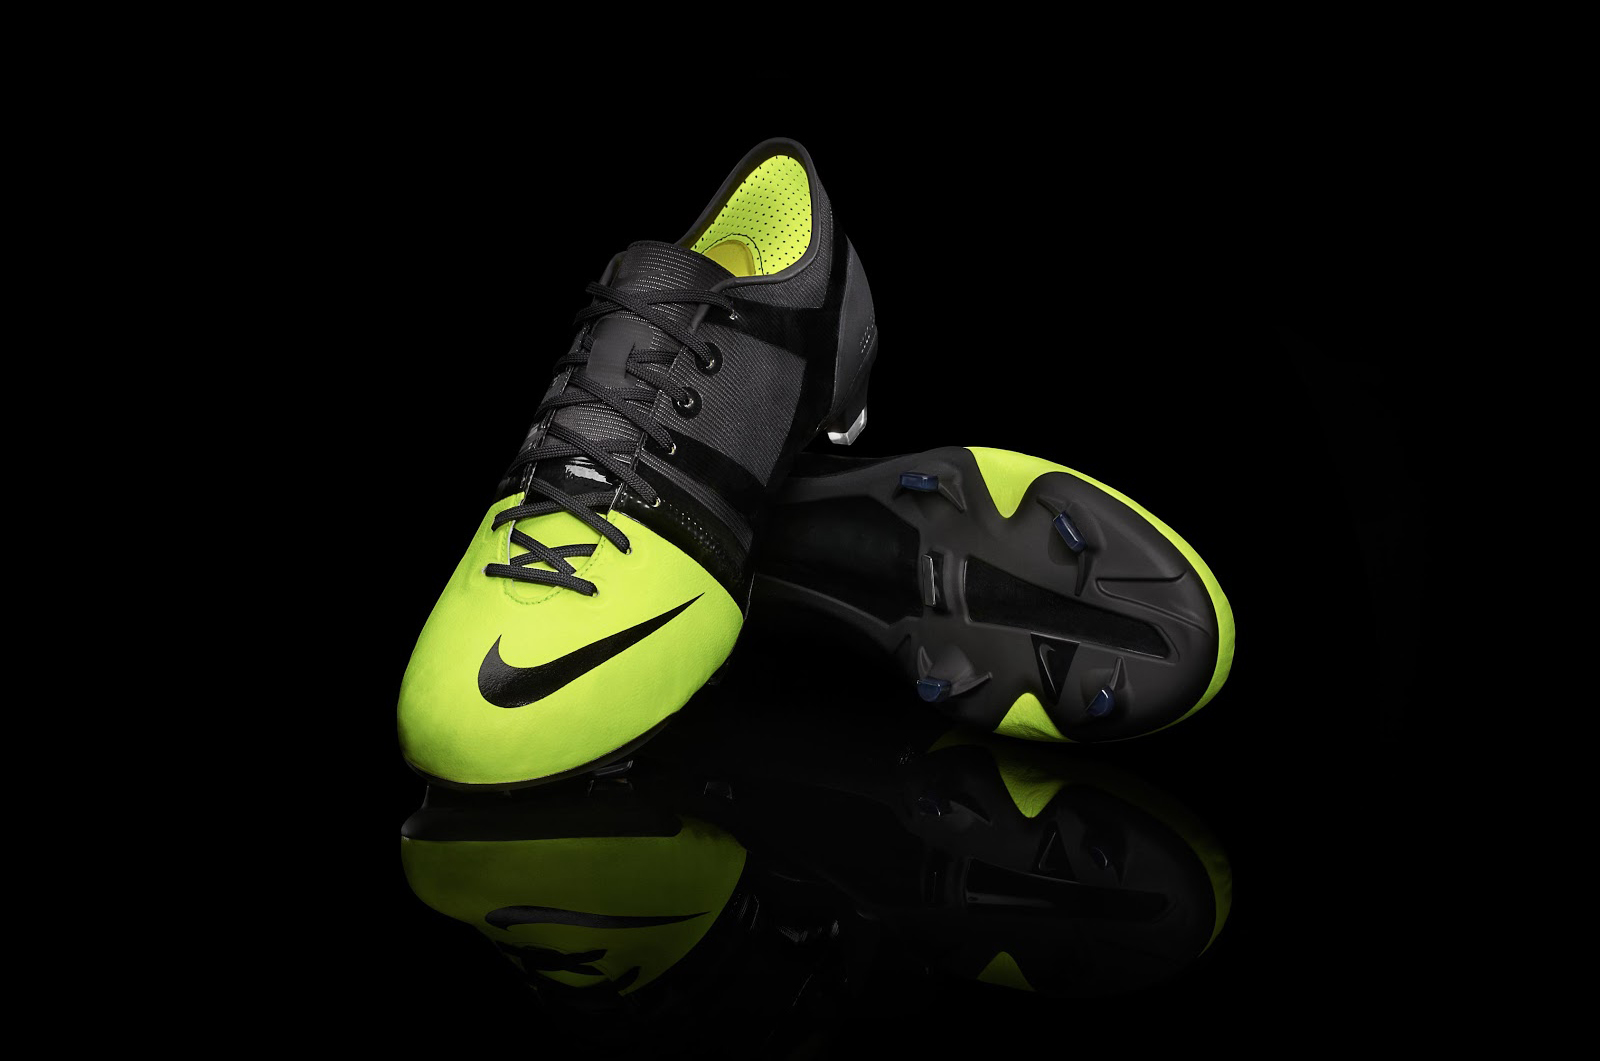 remake-boots-leaked-nike-gs-2012-football-boots-closer-look (3)